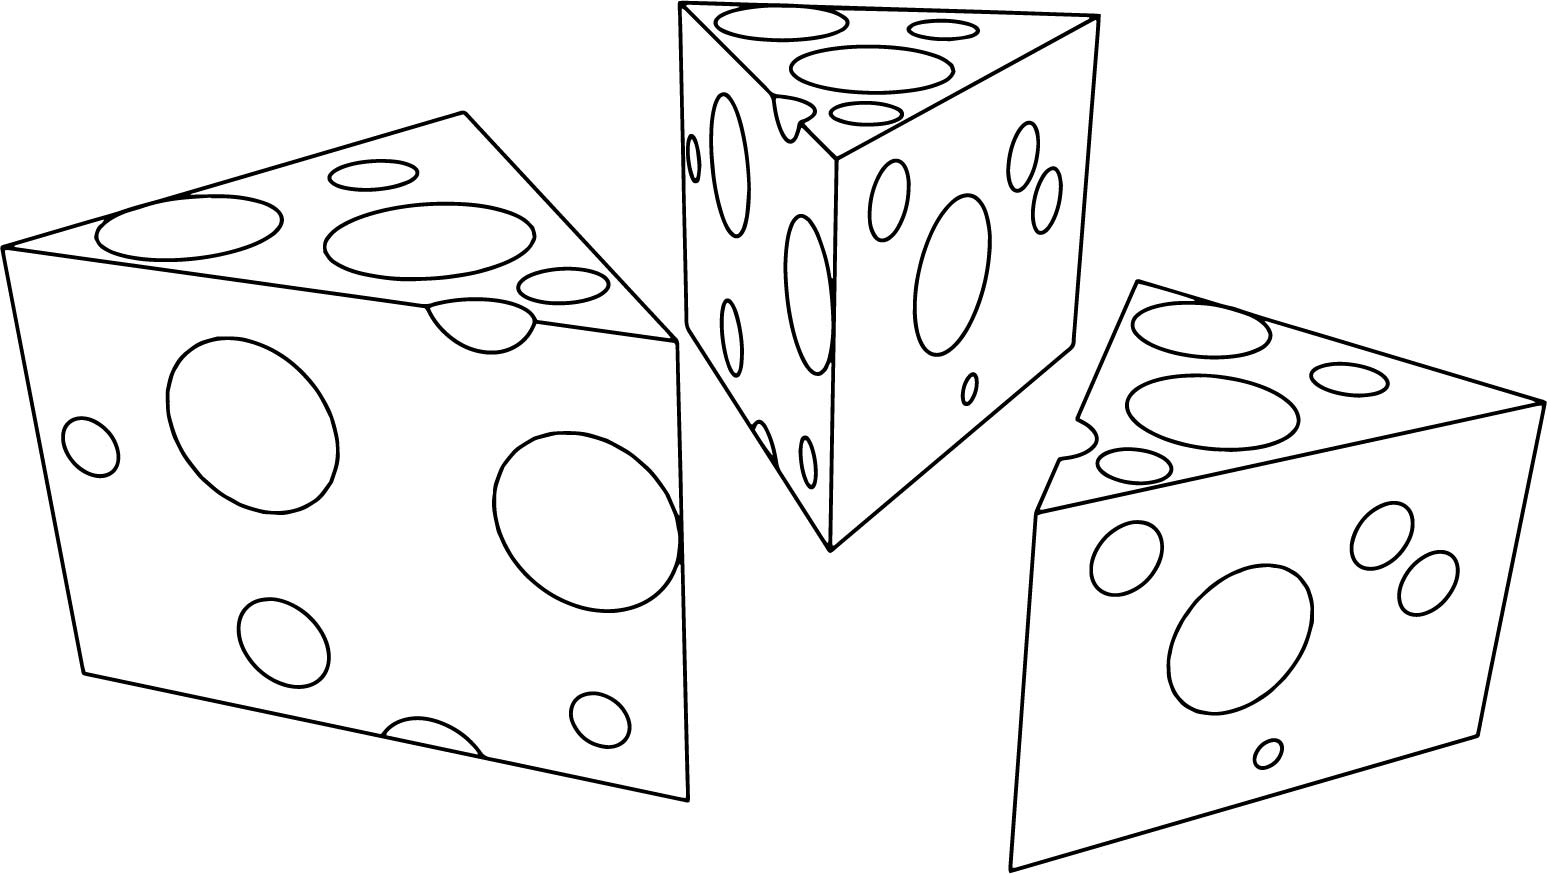 Dice Coloring Page Legos Coloring Page The One Thing To